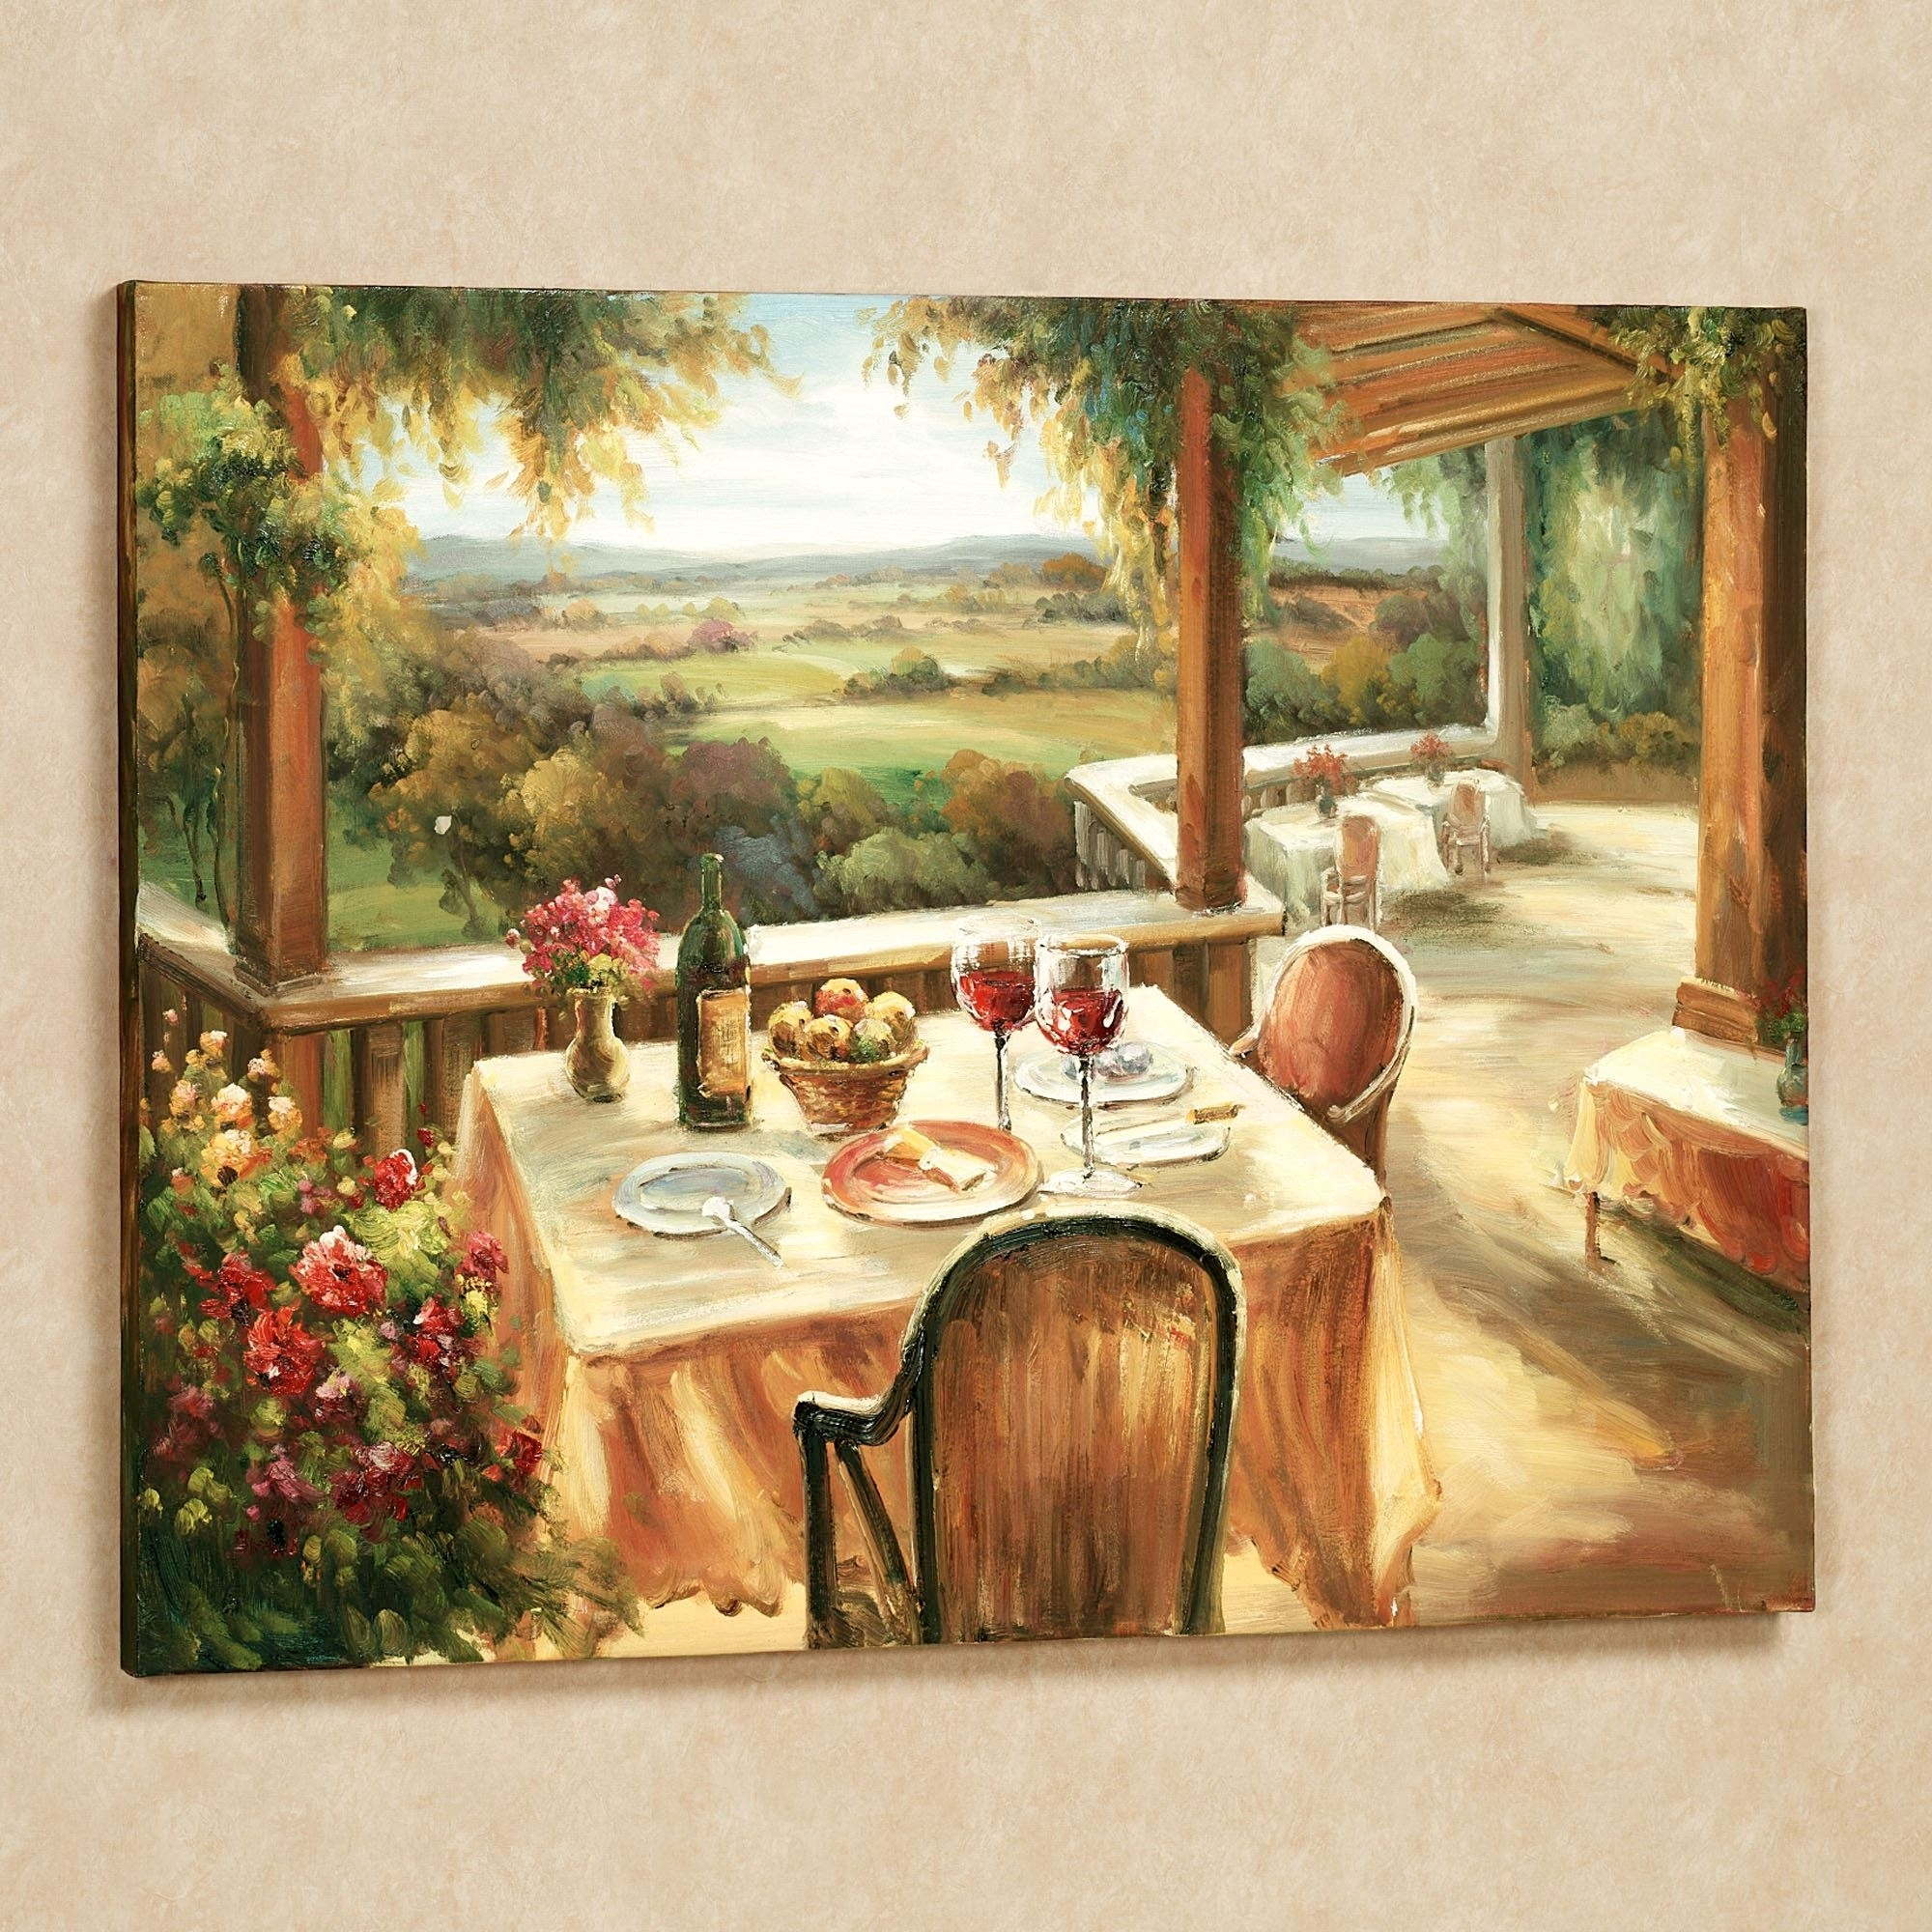 Wine And Dine Canvas Wall Art Throughout Most Popular Canvas Wall Art For Dining Room (View 15 of 15)